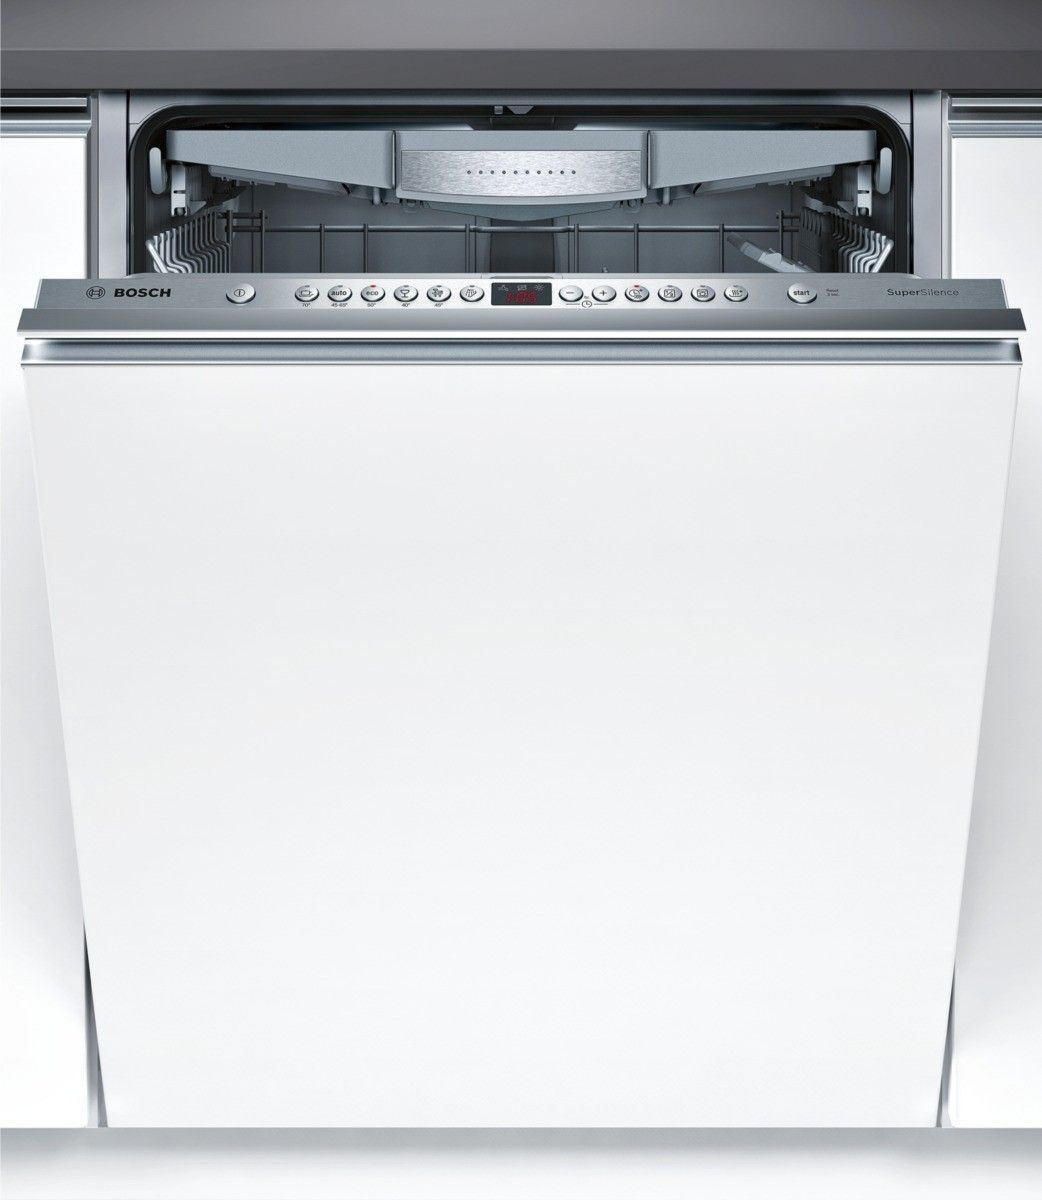 Bosch Smv69m01gb Serie 6 60cm Fully Integrated Integrated Dishwasher Fully Integrated Dishwasher Built In Dishwasher